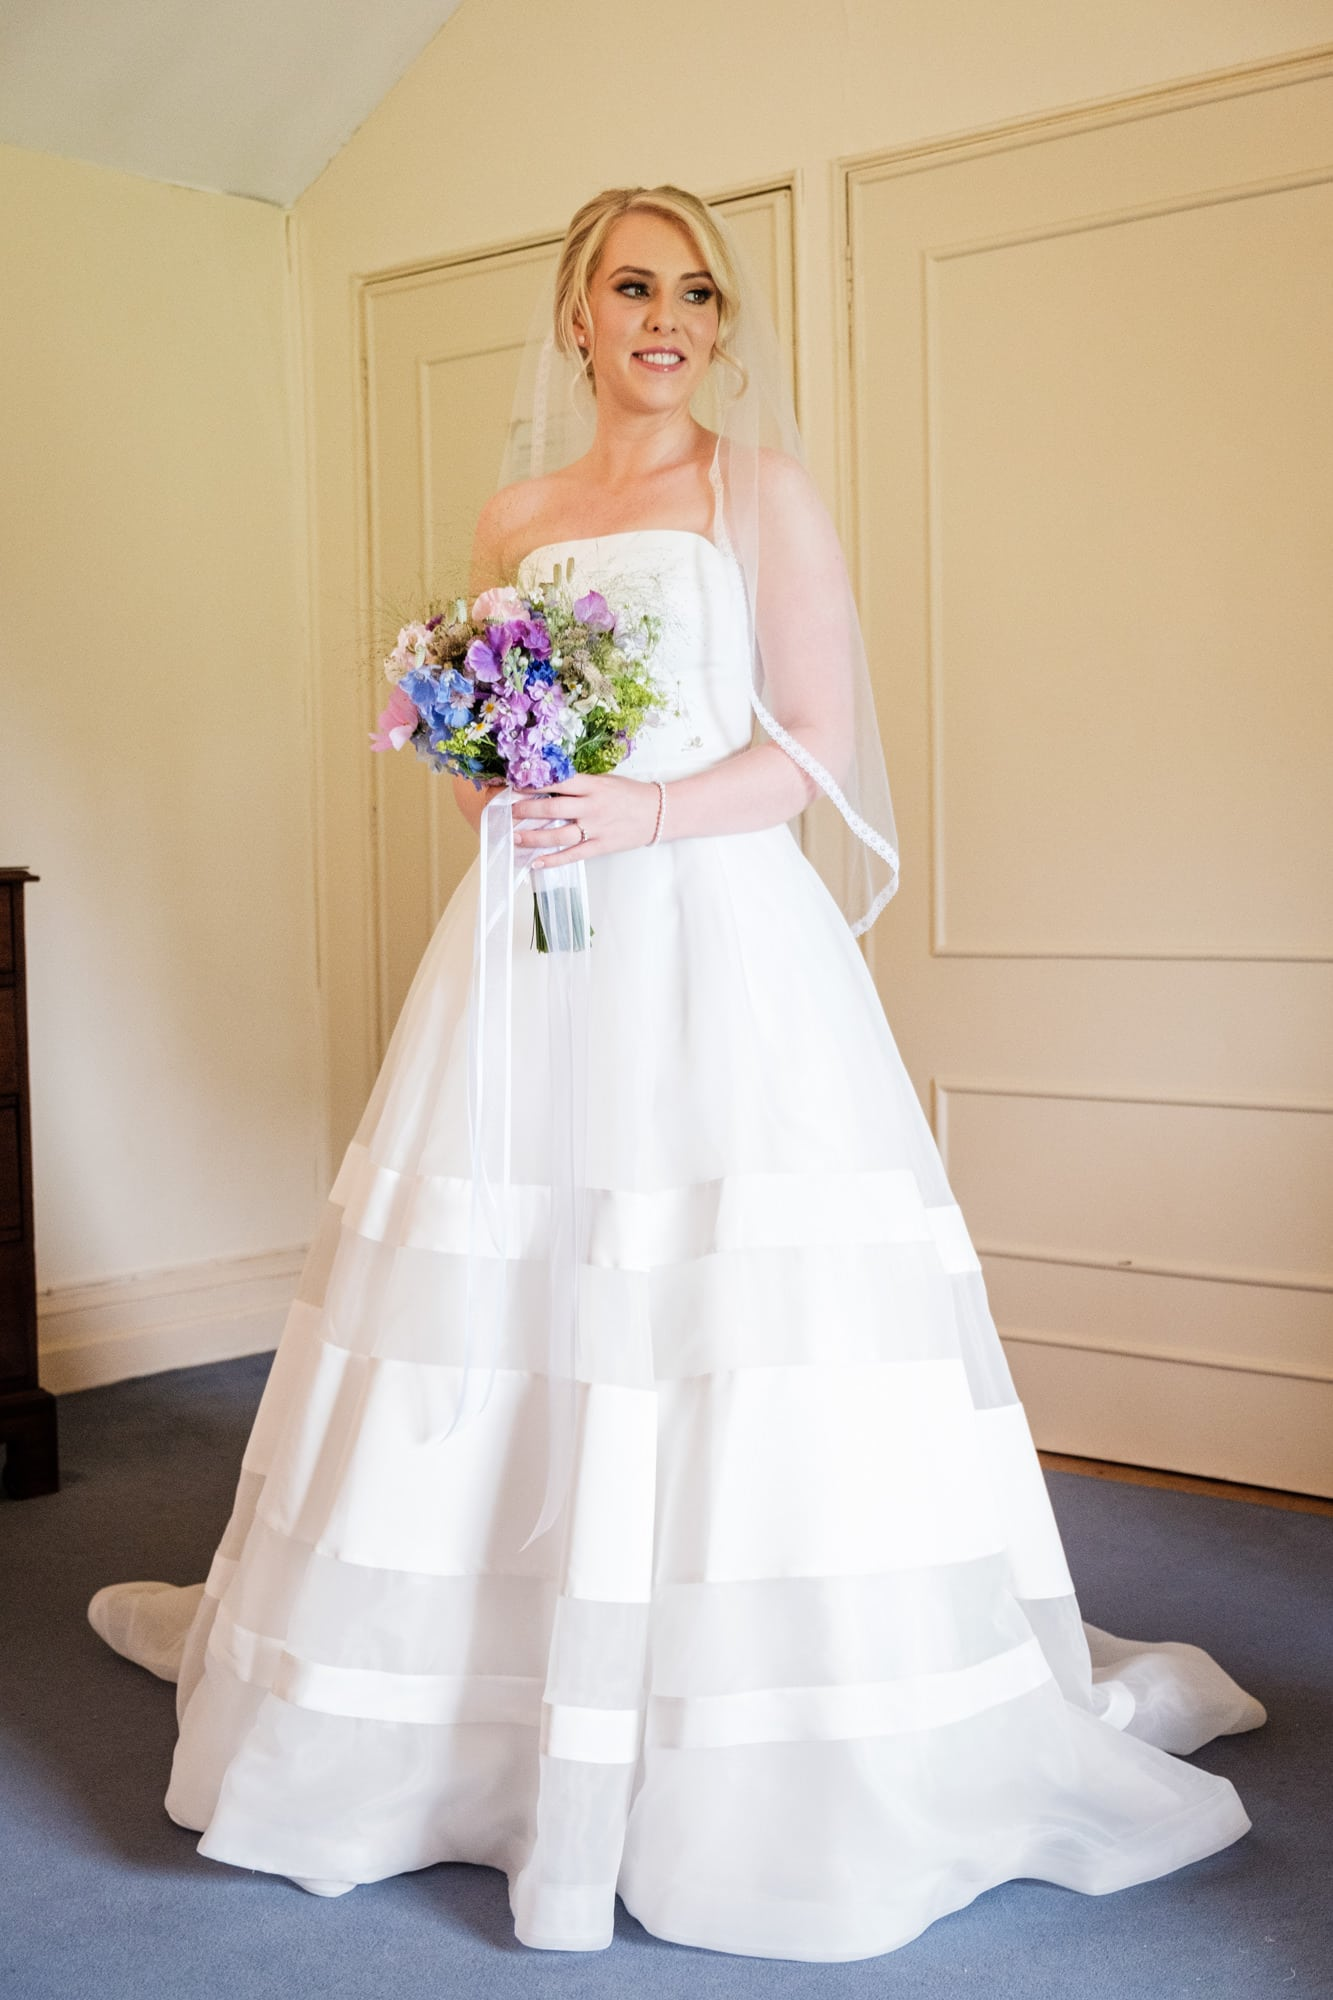 Irish Bride in wedding dress in Rathsallagh House